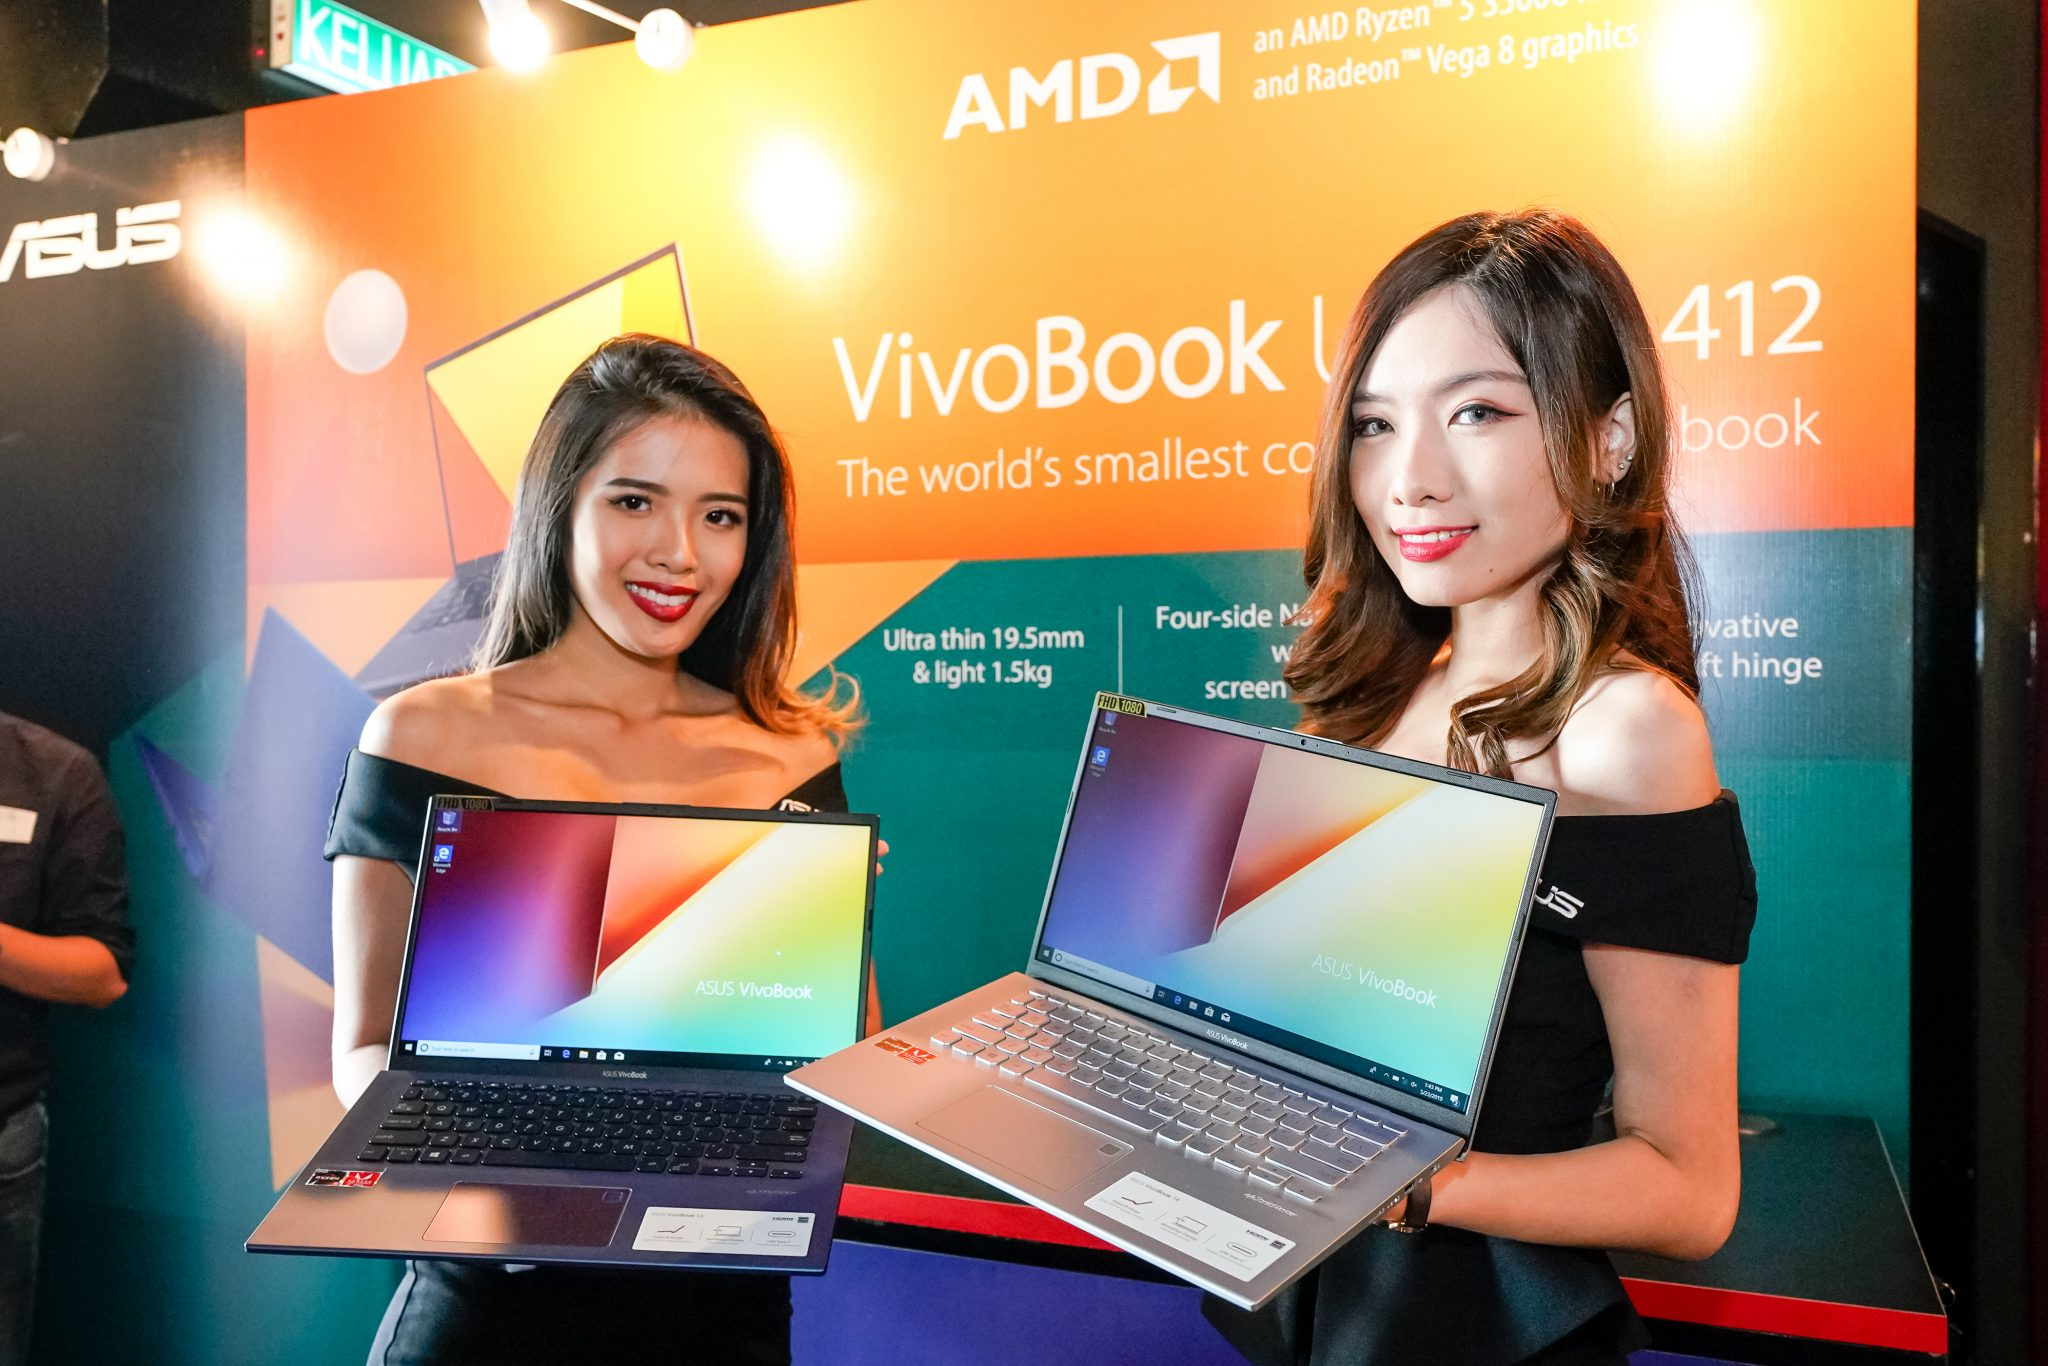 ASUS VivoBook Ultra A412 Launched; Priced at RM2,199 5